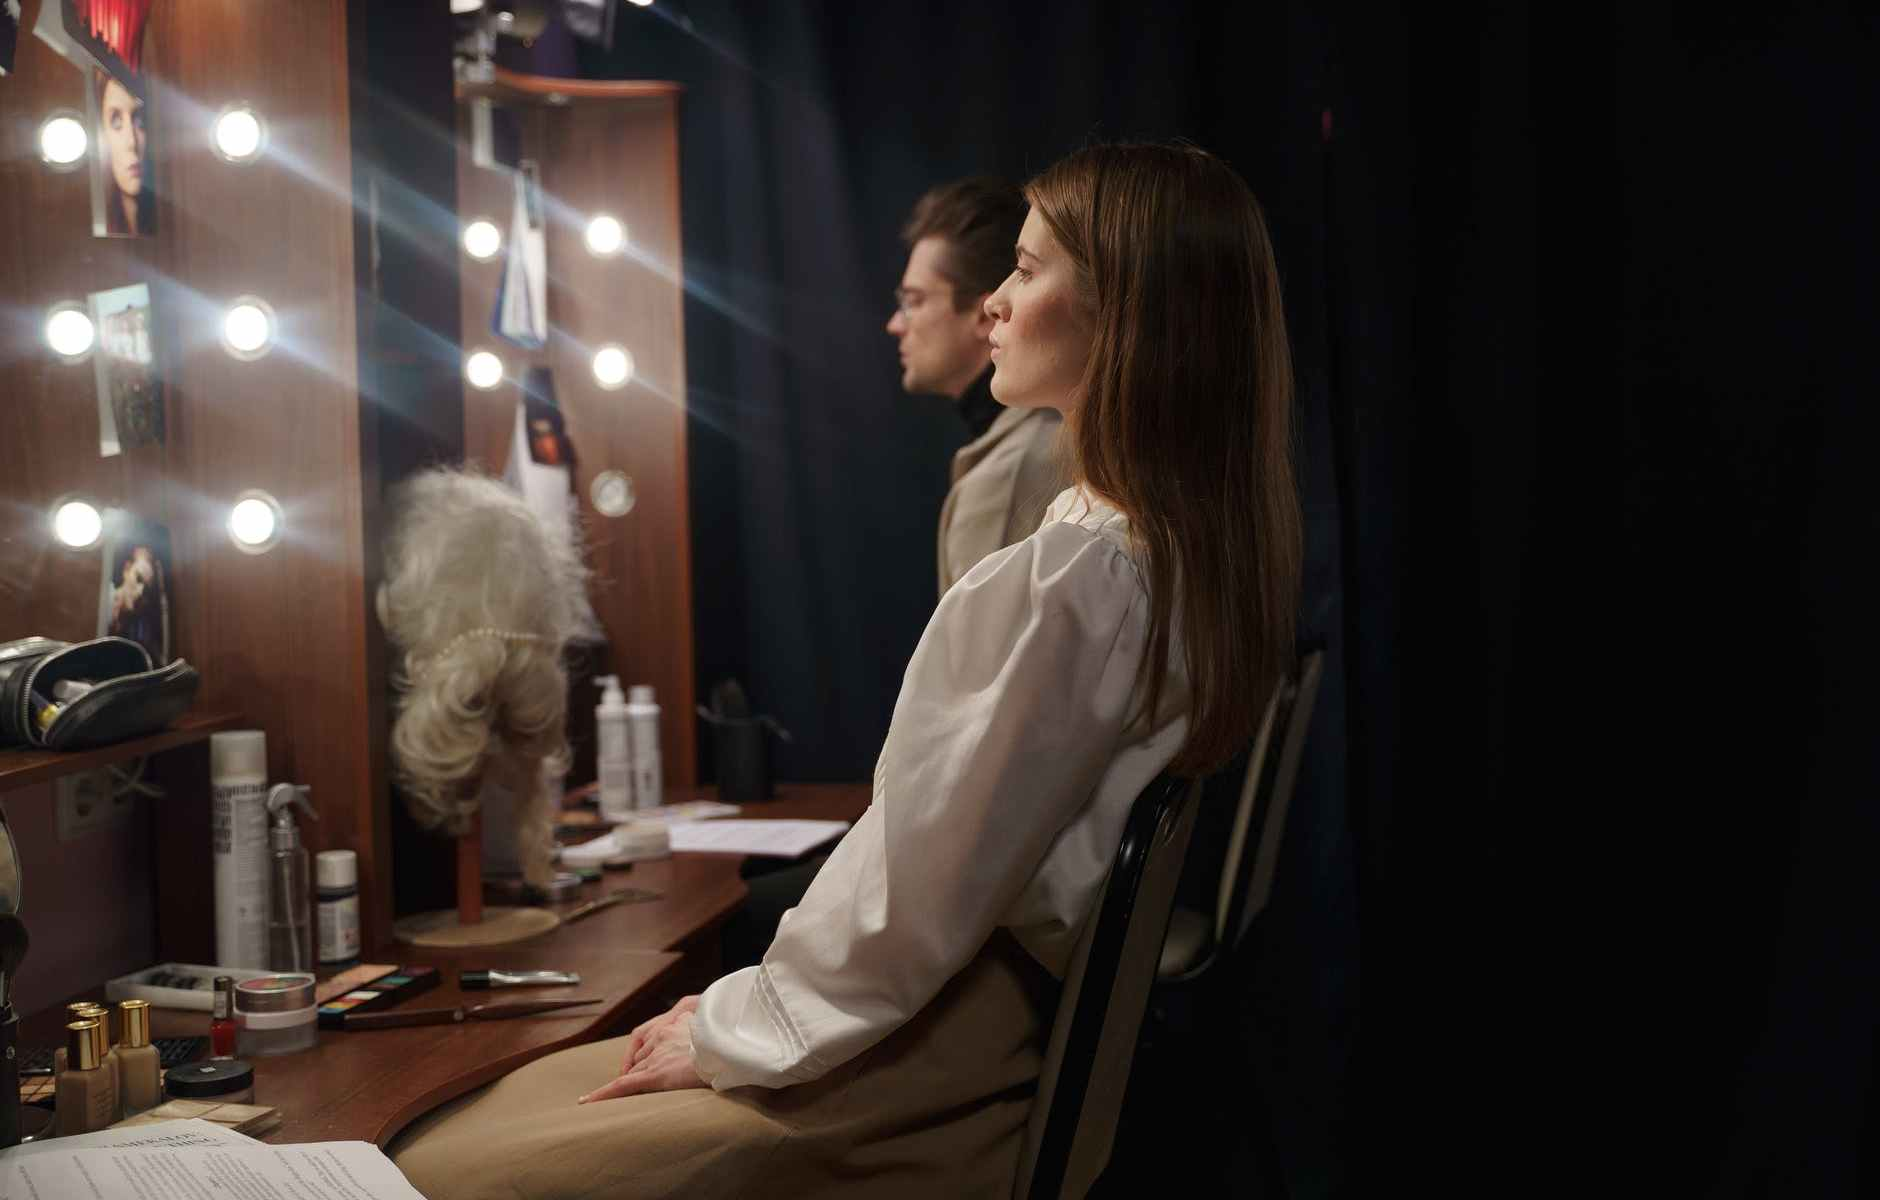 man and woman sitting infront of a mirror